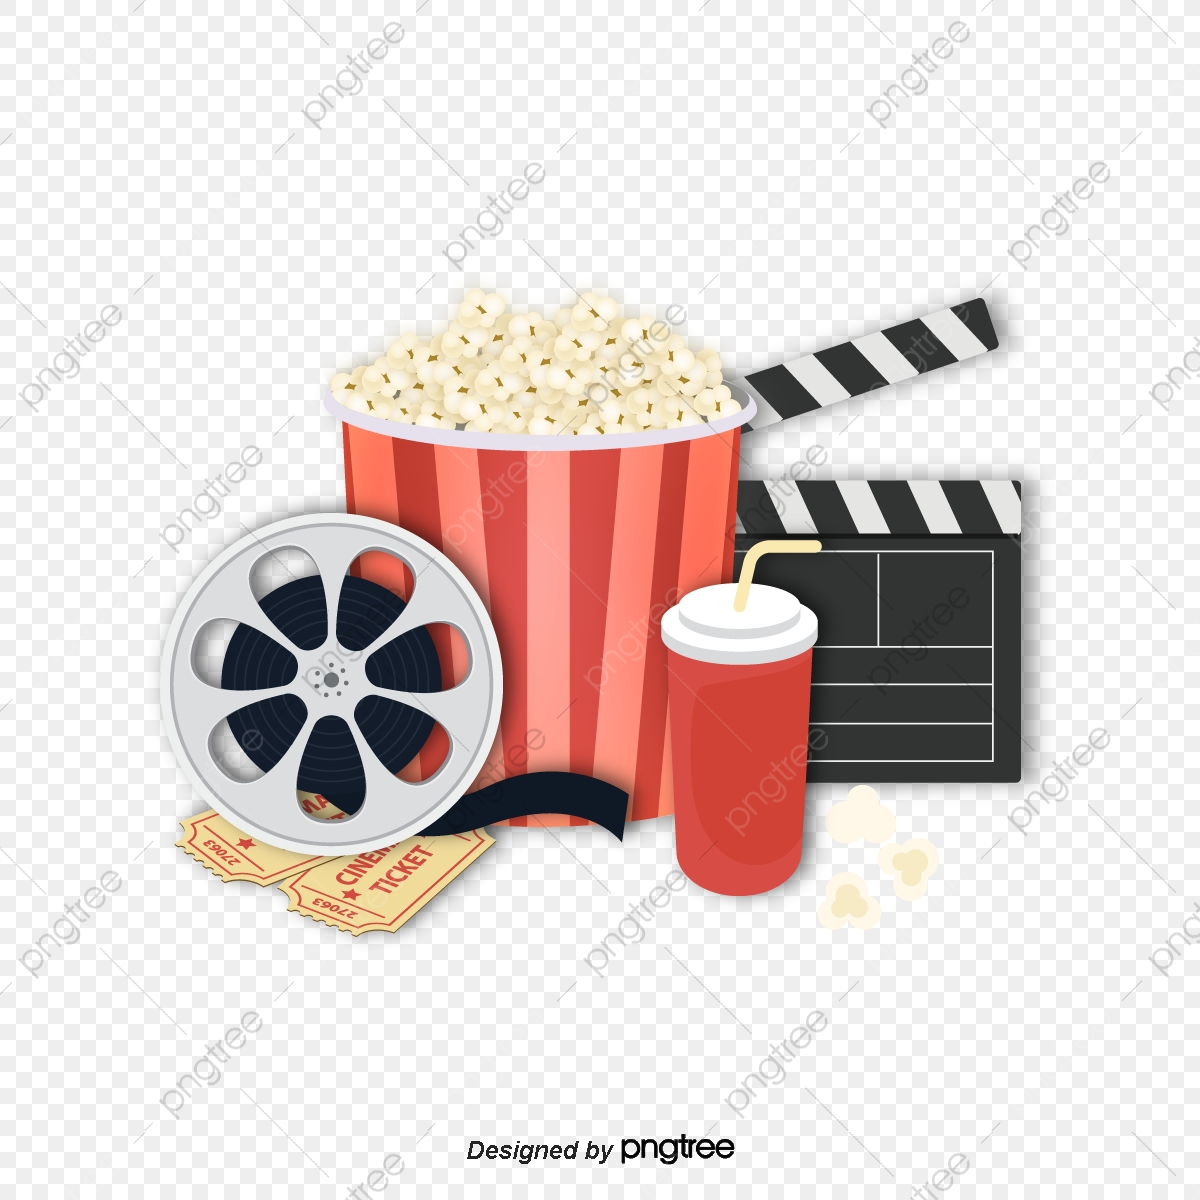 Cinema Popcorn Vector Png Vector Popcorn Gourmet Popcorn Cinema Popcorn Png And Vector With Transparent Background For Free Download